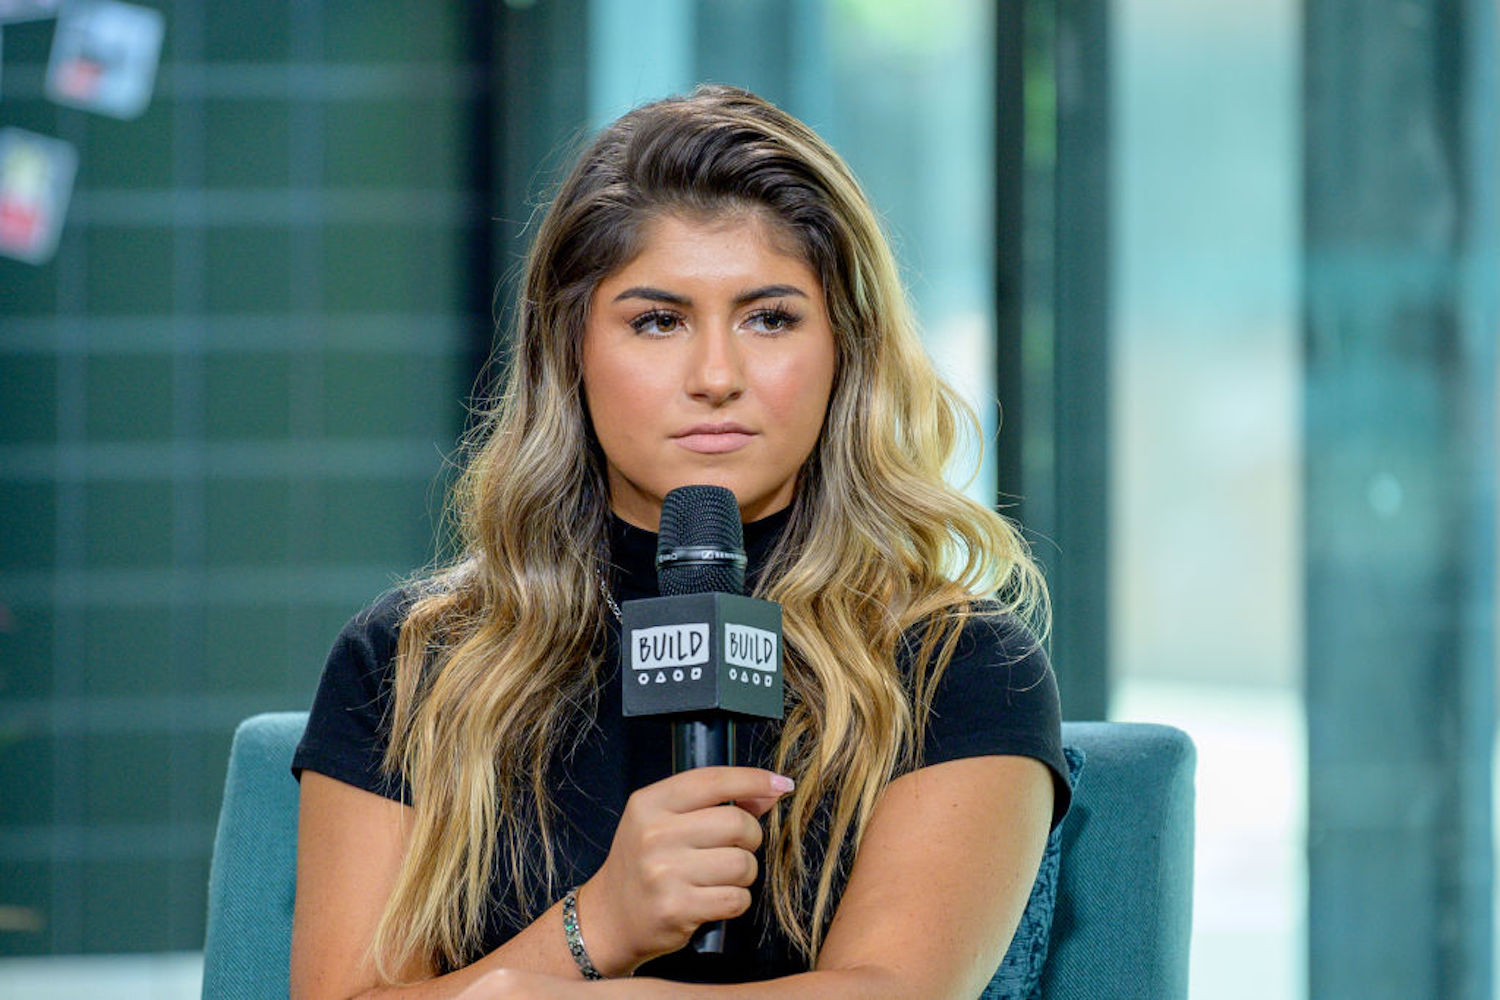 Hailie Deegan is a promising talent in NASCAR at 19 years old, but her career just hit a snag after she was caught uttering an offensive slur.